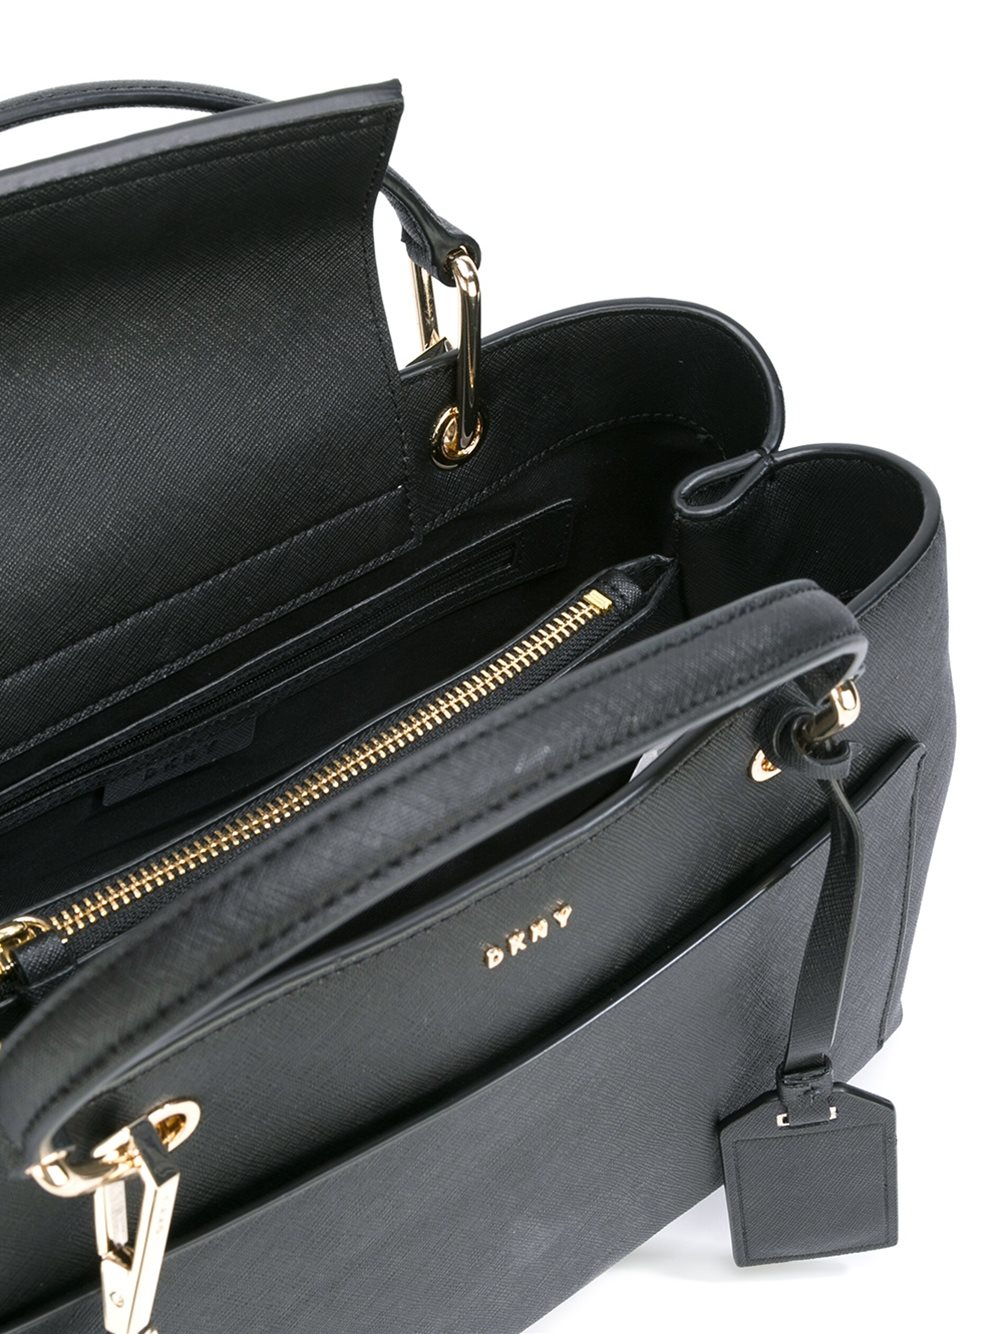 DKNY Leather Front Pocket Tote in Black